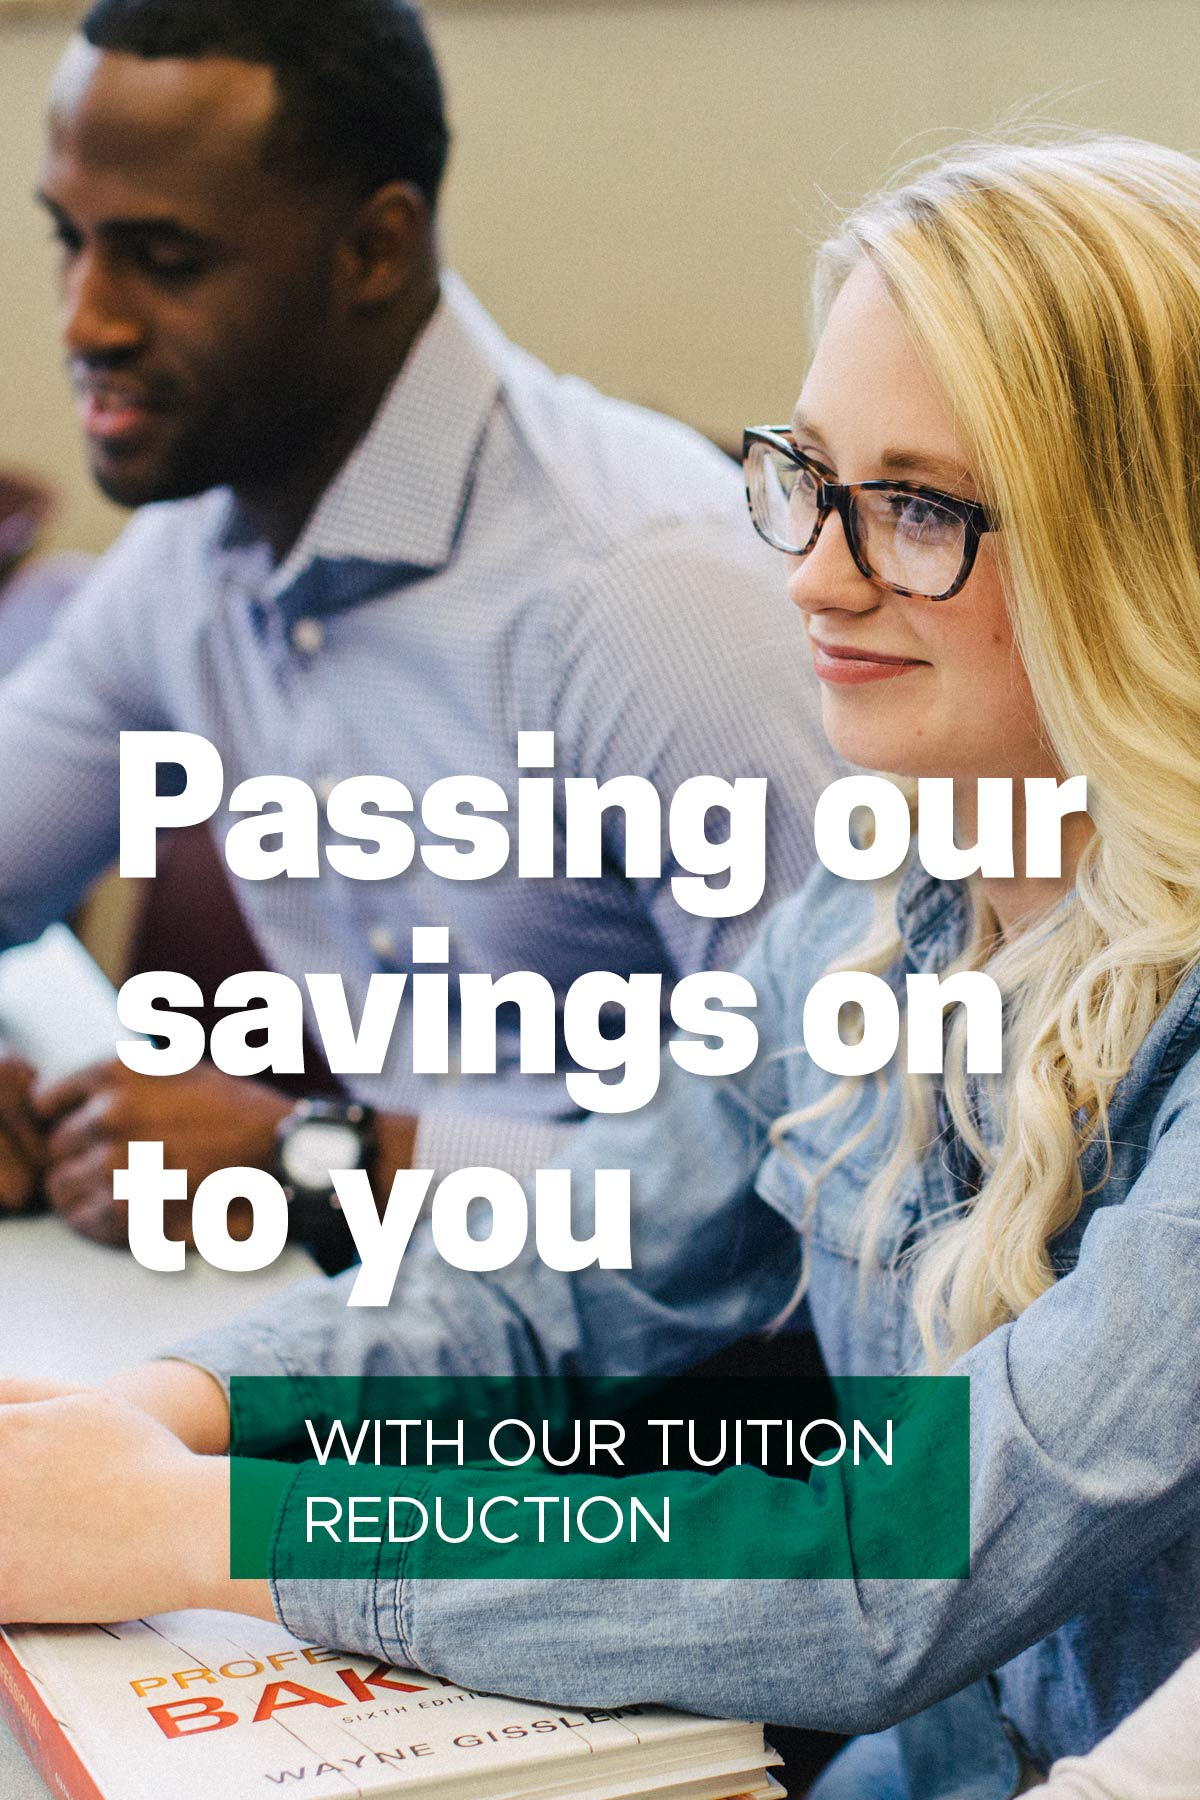 passing our savings on to you with our tuition reduction banner image